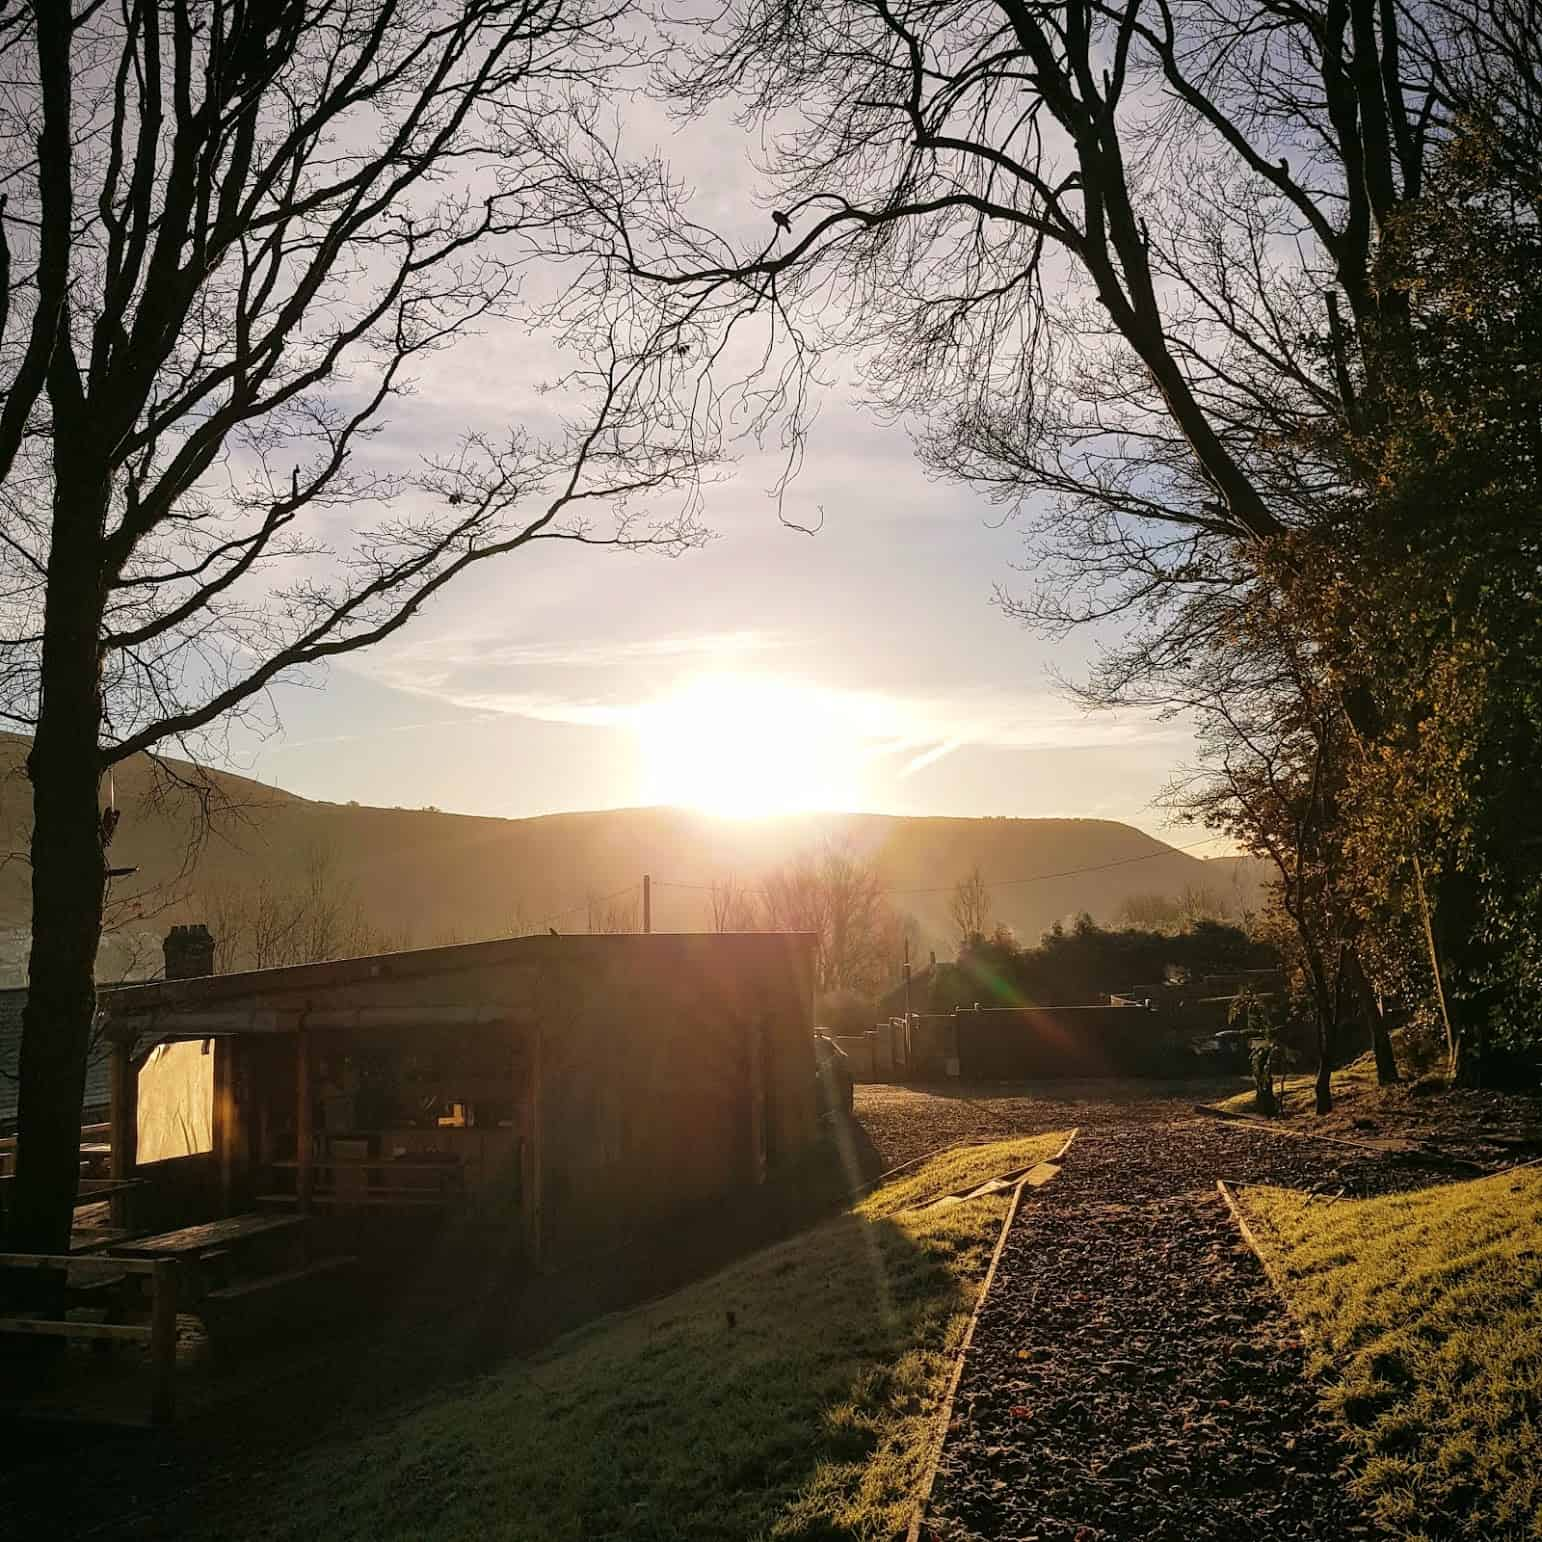 The sun rising over the roost cabins